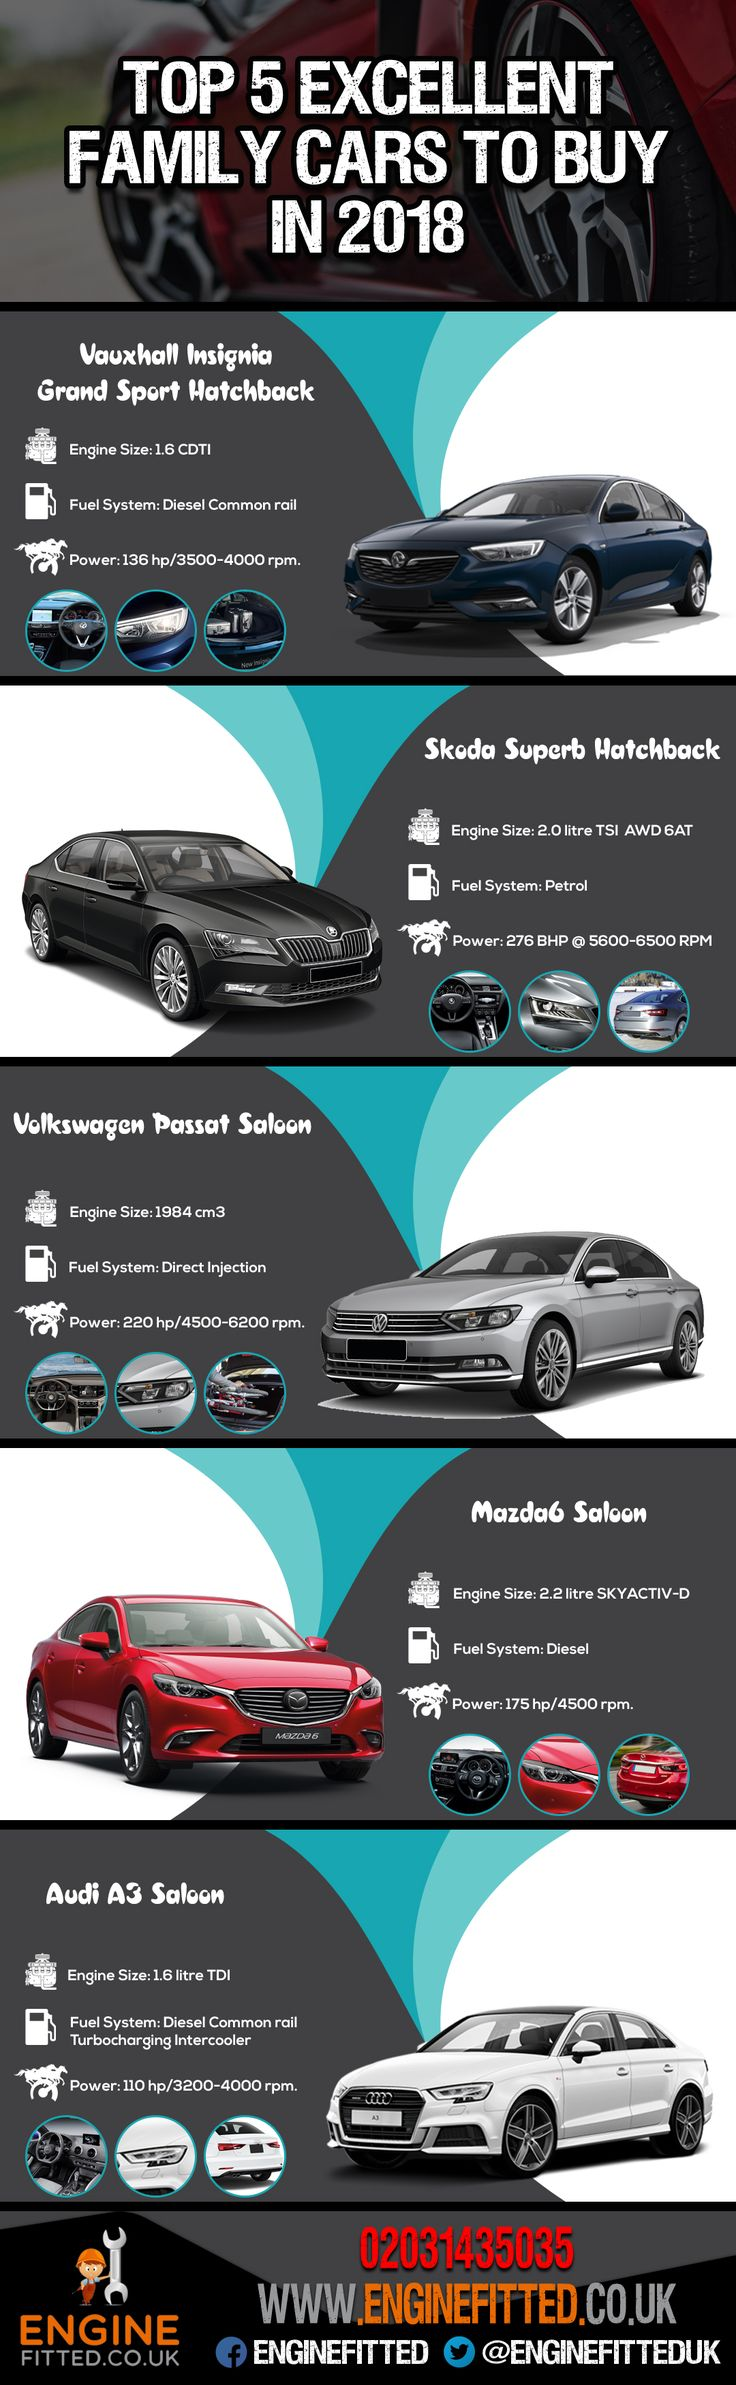 Top 5 Excellent Family Cars To Buy In 2018 #AudiA3 #Mazda6 #SkodaSuperb #VauxhallInsigniaGrandSport #VolkswagenPassat #FamilyCars #Infographic Visit blog: https://www.enginefitted.co.uk/blog/top-5-excellent-family-cars-buy-2018/